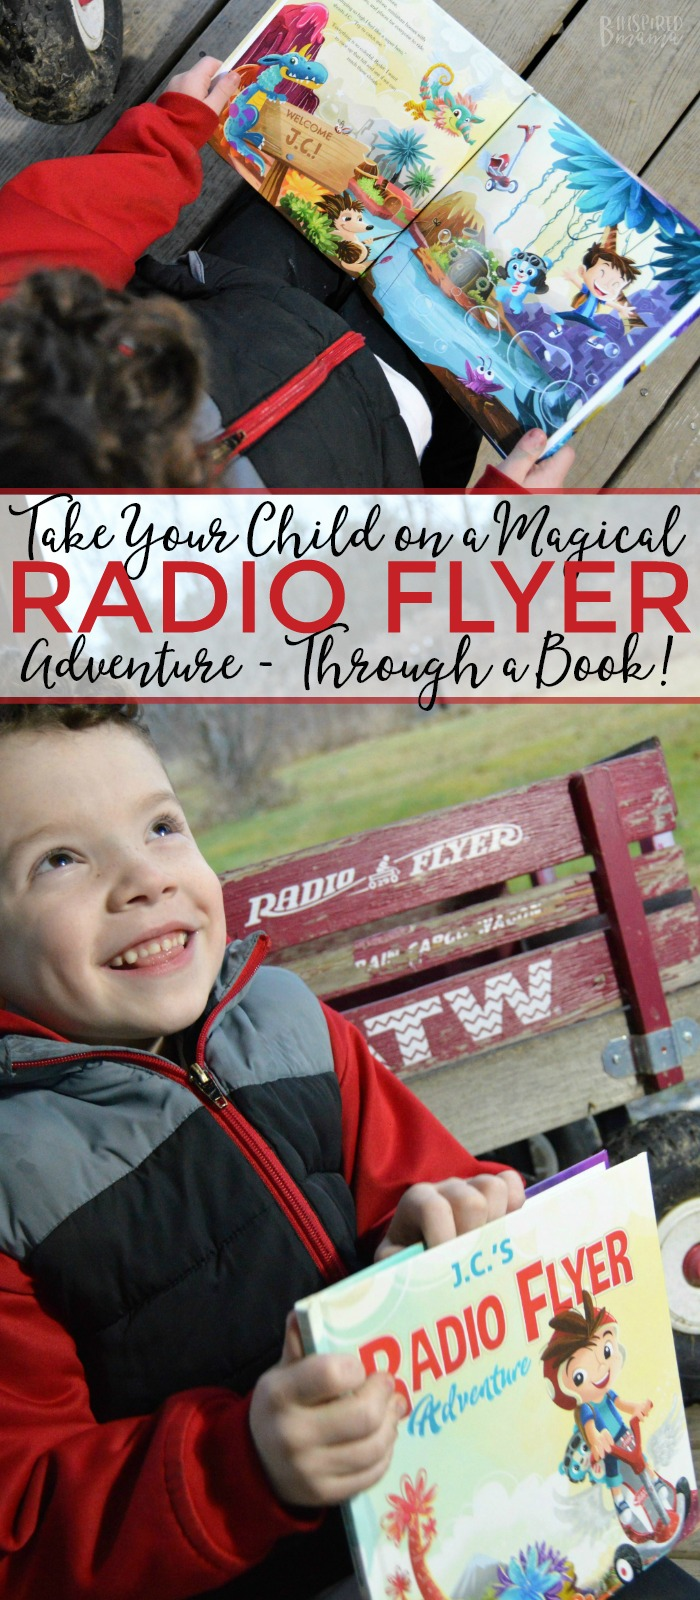 Take your child on a magical Radio Flyer Adventure - full of the storytelling, imagination, & outdoor play Radio Flyer has inspired for 100 years - through a BOOK! An awesome personalized children's book that's perfect for getting any young reader excited about reading AND outdoor play, too! #play #kids #playmatters #radioflyer #books #childrensbooks #kbn